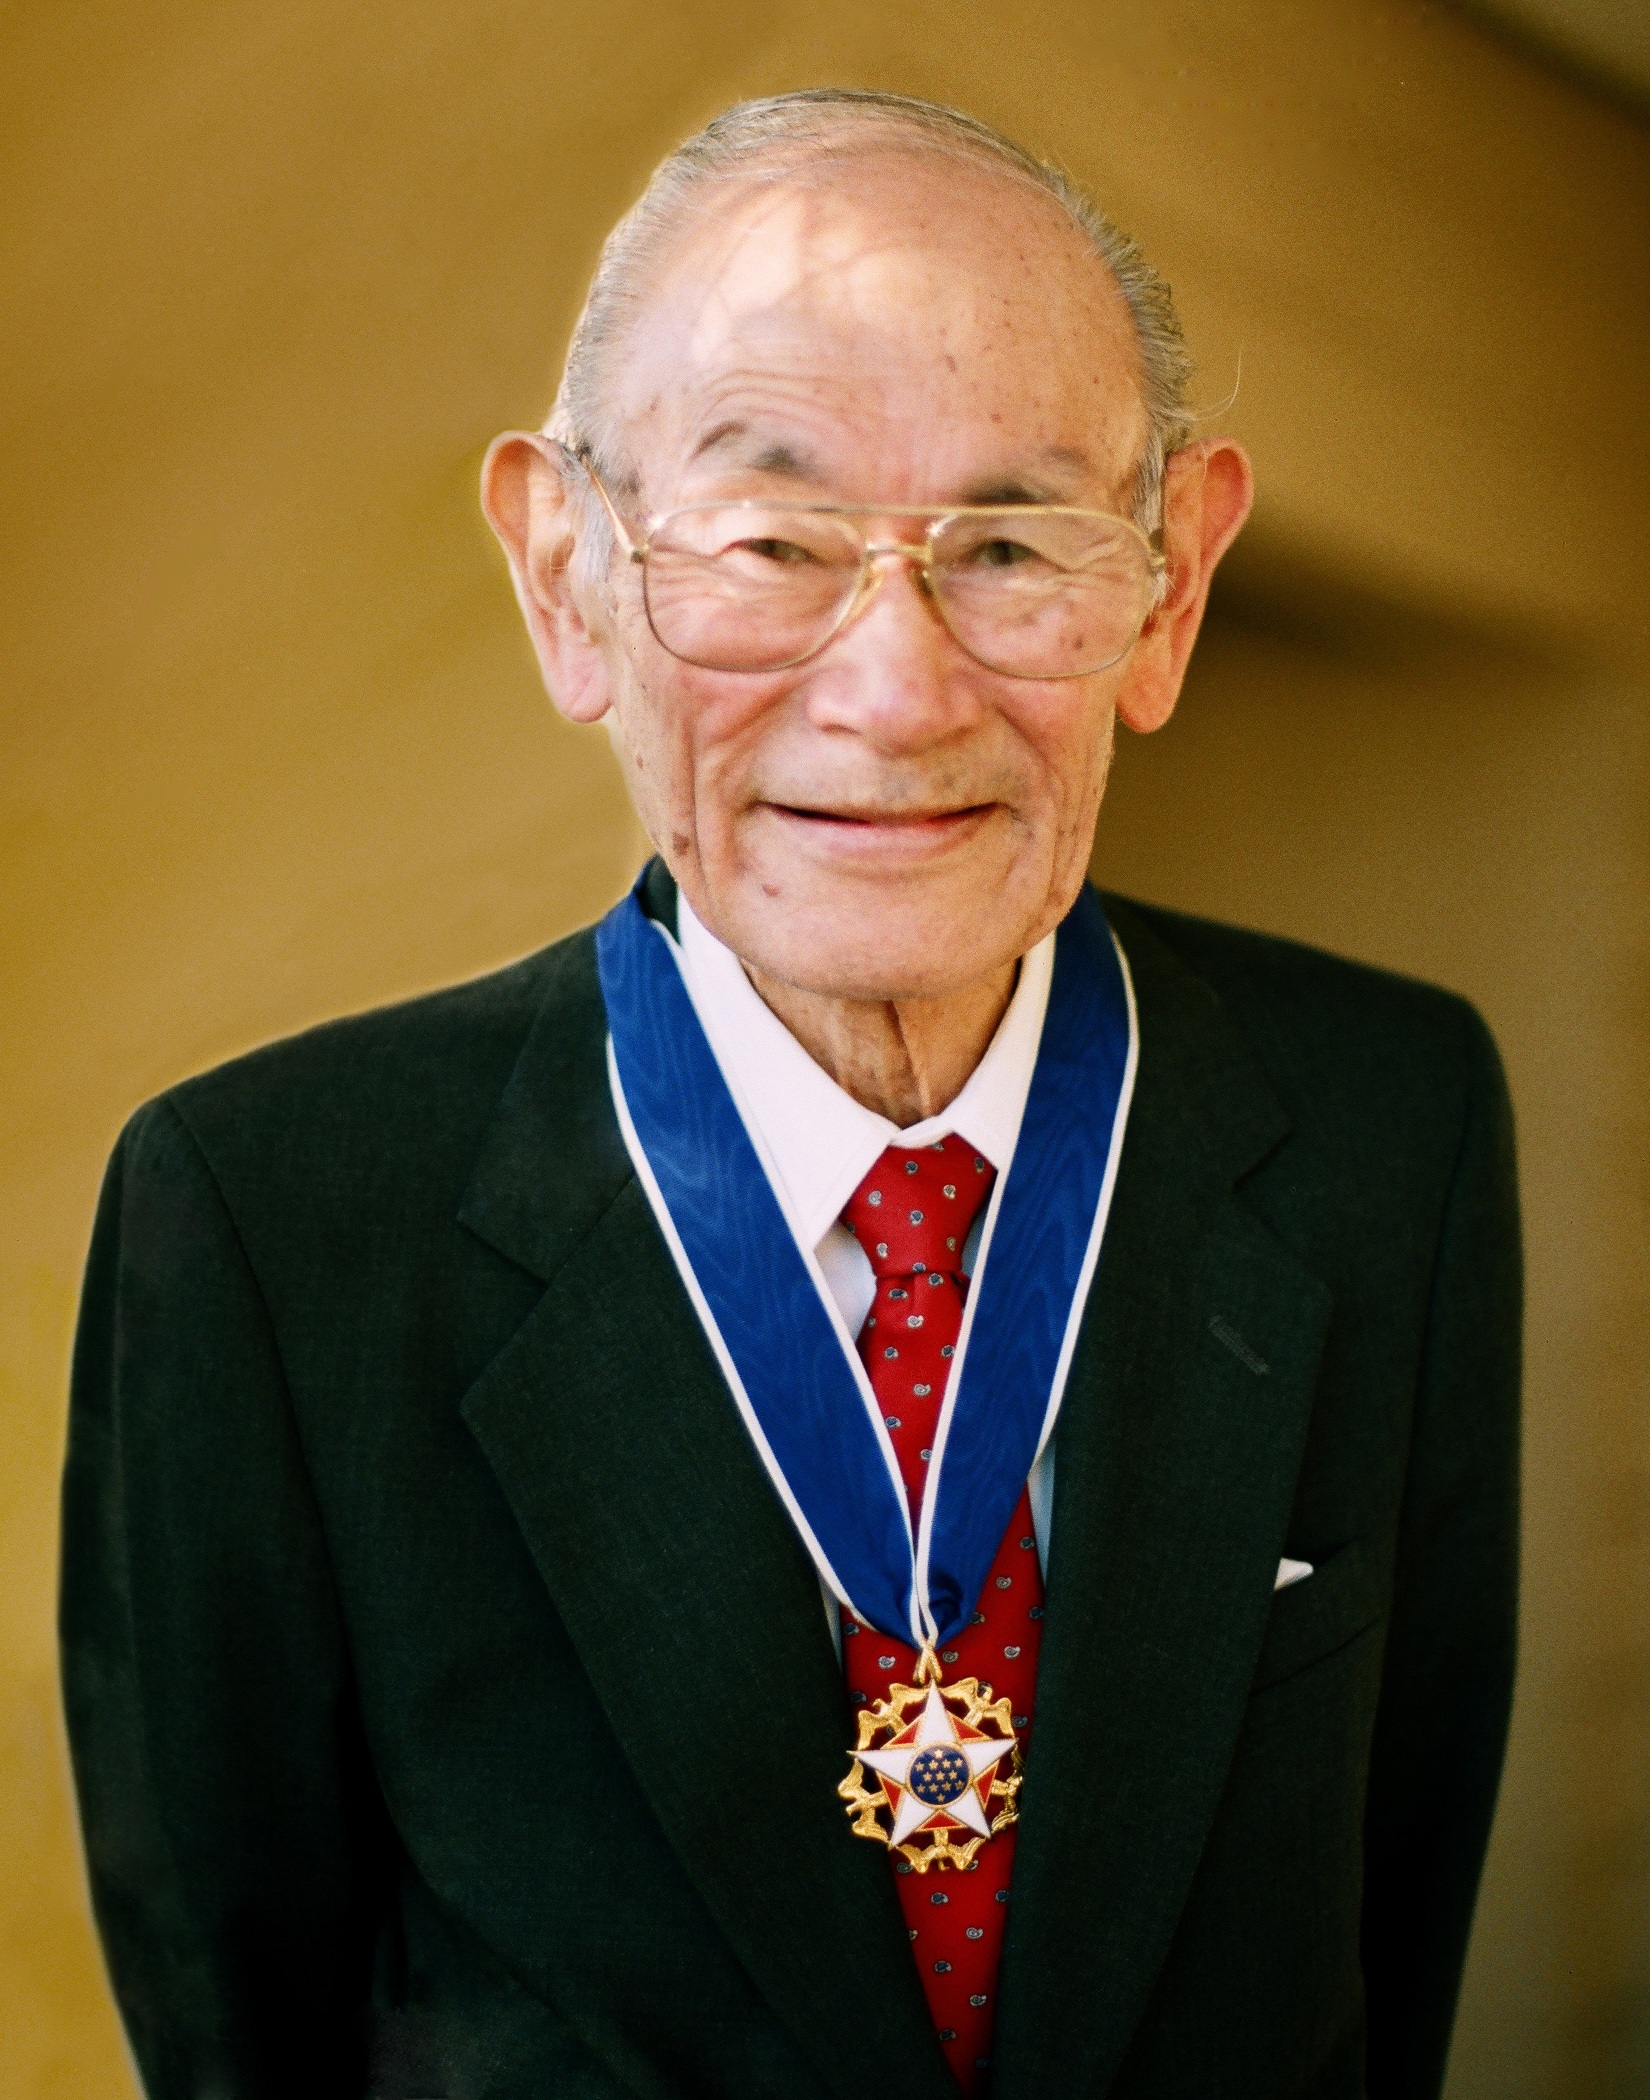 (Photo courtesy of The Korematsu Institute)  Utah Gov. Gary Herbert issued a proclamation in 2013 designating Jan. 30 as Fred Korematsu Day in honor of the former internee at Utah's Topaz internment camp who went on to make history. Korematsu is pictured here with his Presidential Medal of Freedom, granted in 1998. Korematsu died in 2005 at age 86.